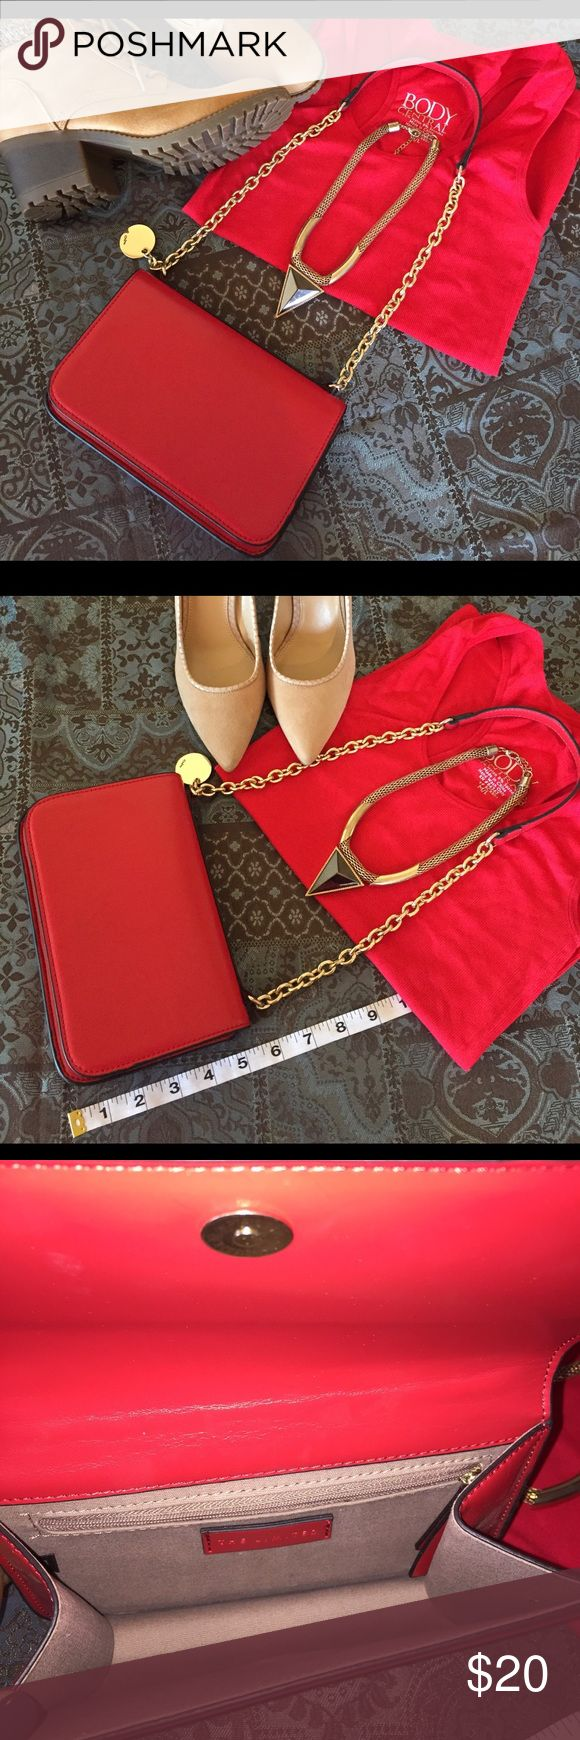 THE LIMITED Red Shoulder Bag w/Gold Accents This cute little handbag isn't just for special occasions. You can dress it up or down it's all up to you. Day time use match it with your favorite pair of boots and night time with your favorite pumps. It's all up to you! Faux leather w/gold tone hardware. *** Bundle w/ other items to save*** The Limited Bags Shoulder Bags